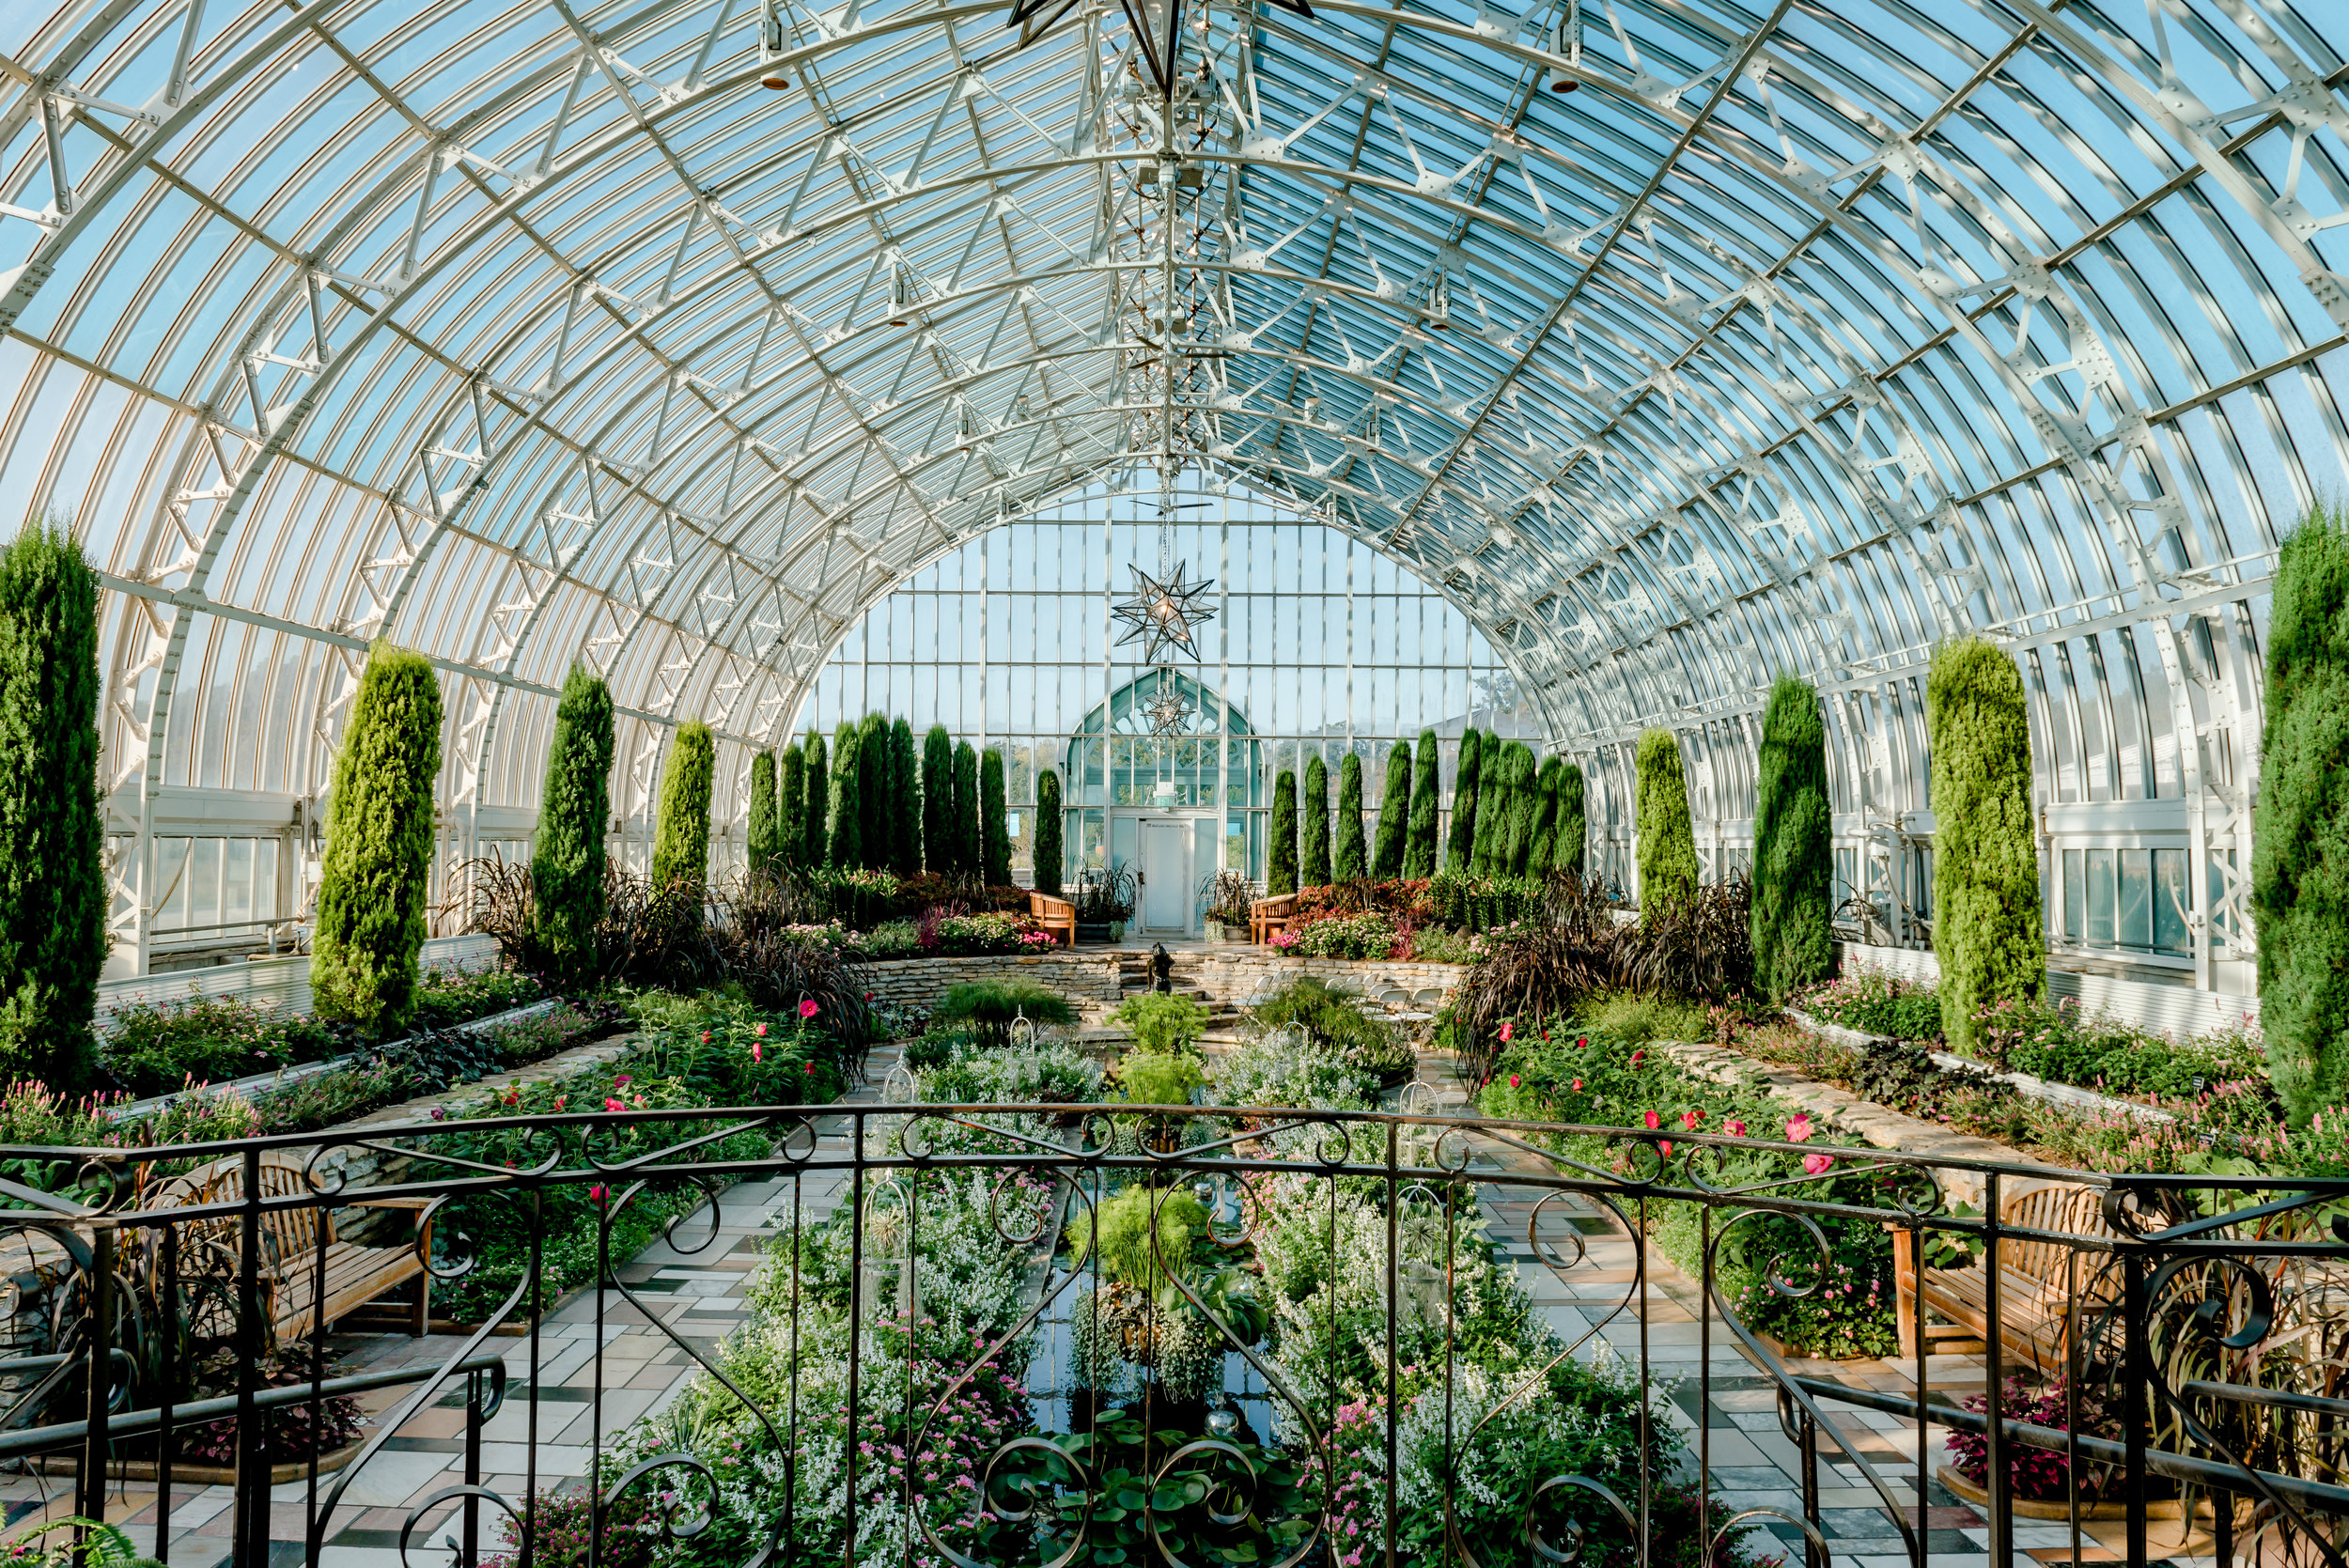 Sunken Gardens at Marjorie McNeely Conservatory at Como Zoo - St. Paul Wedding Photographer